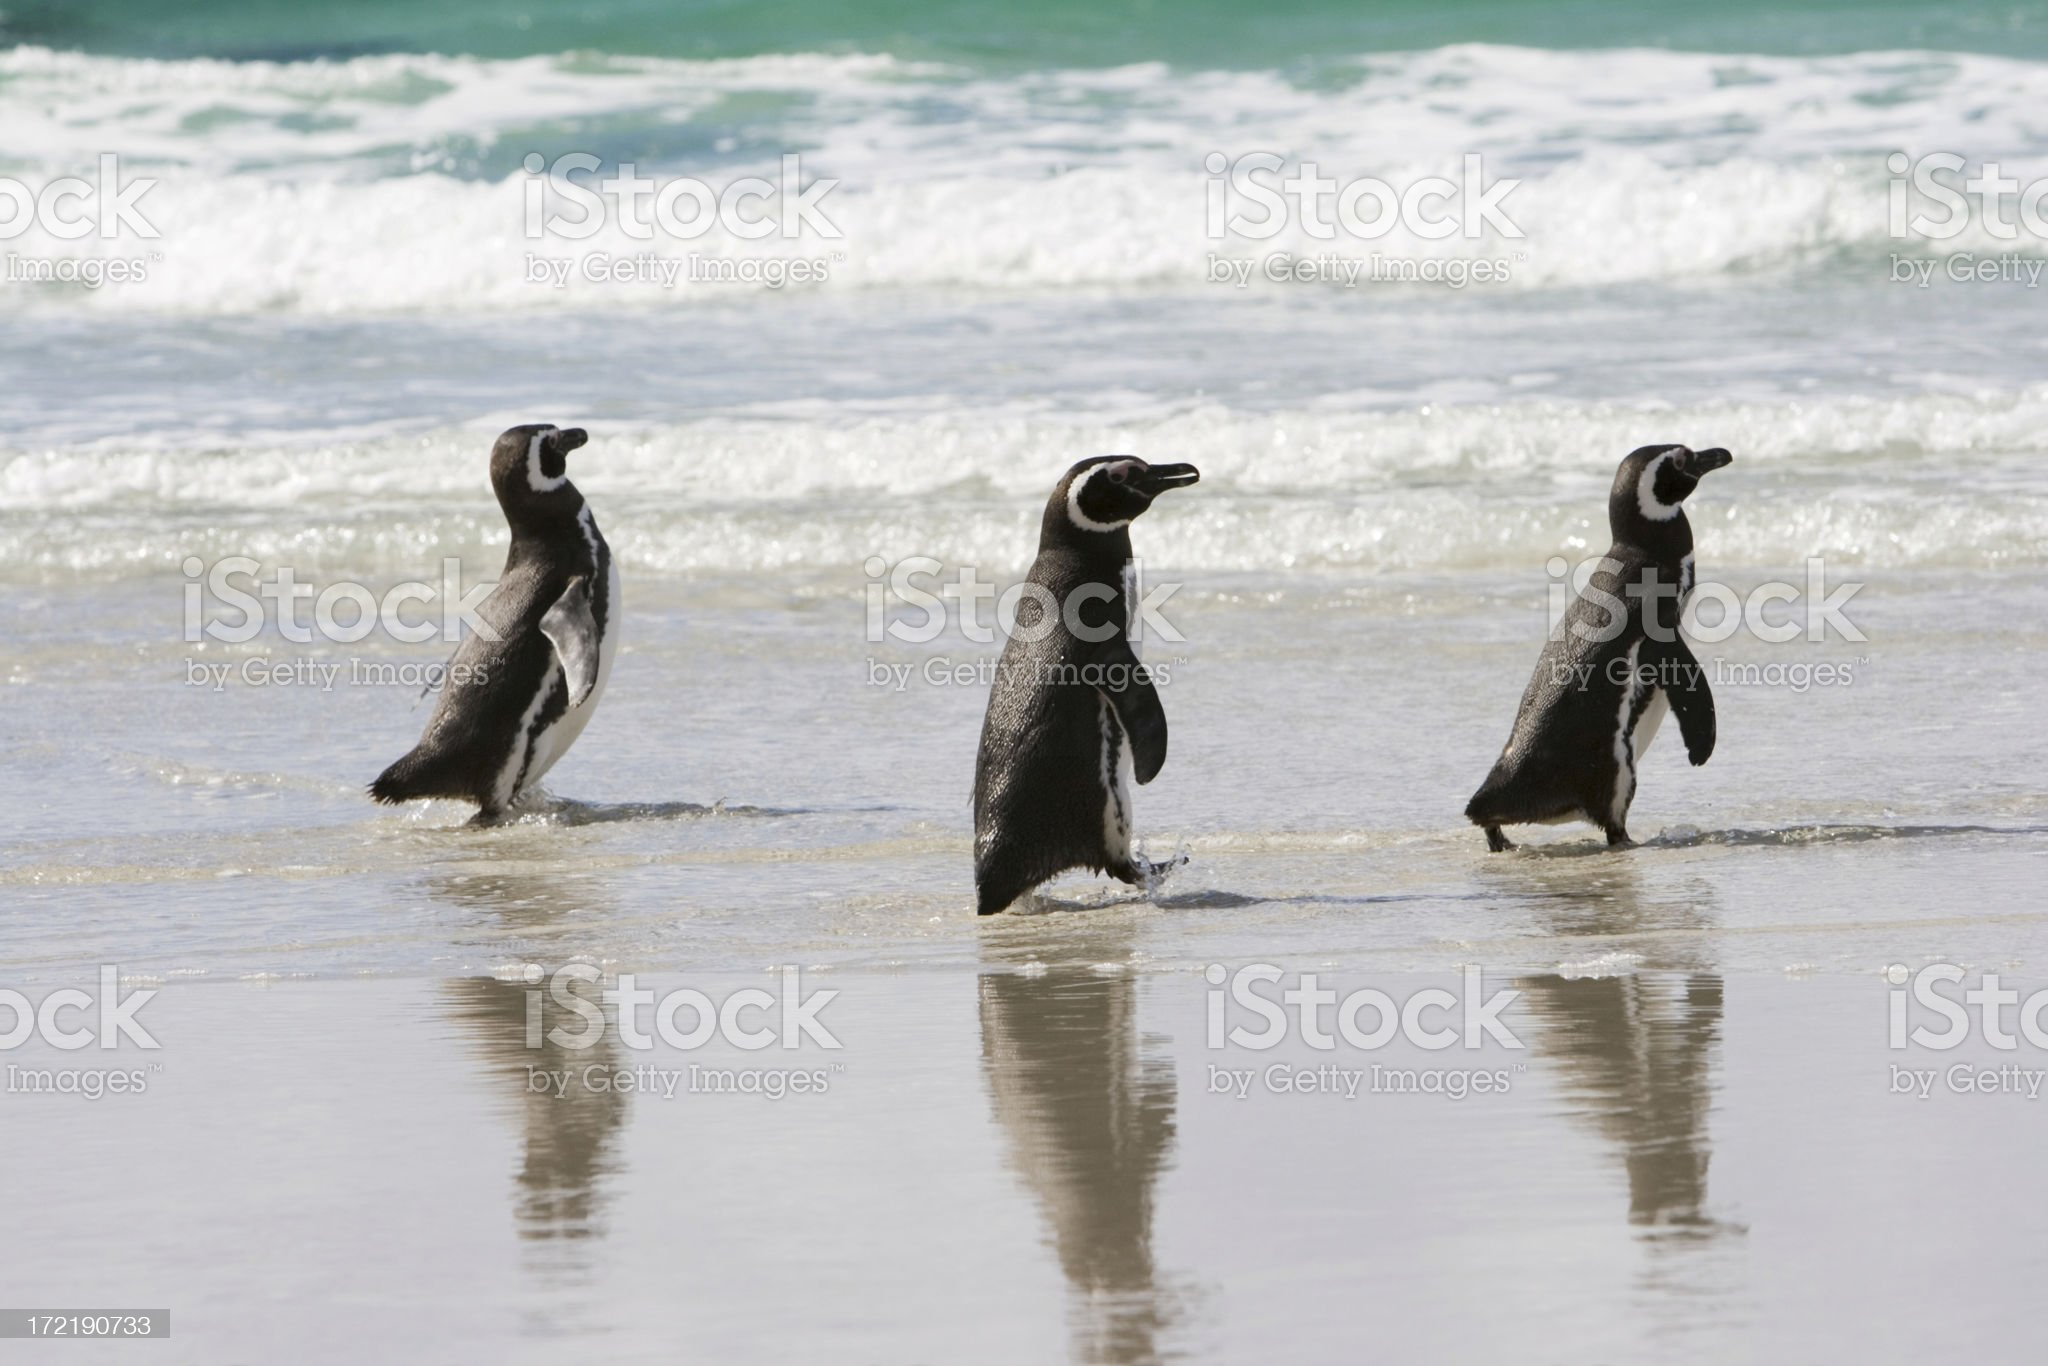 Three Penguins in a row royalty-free stock photo